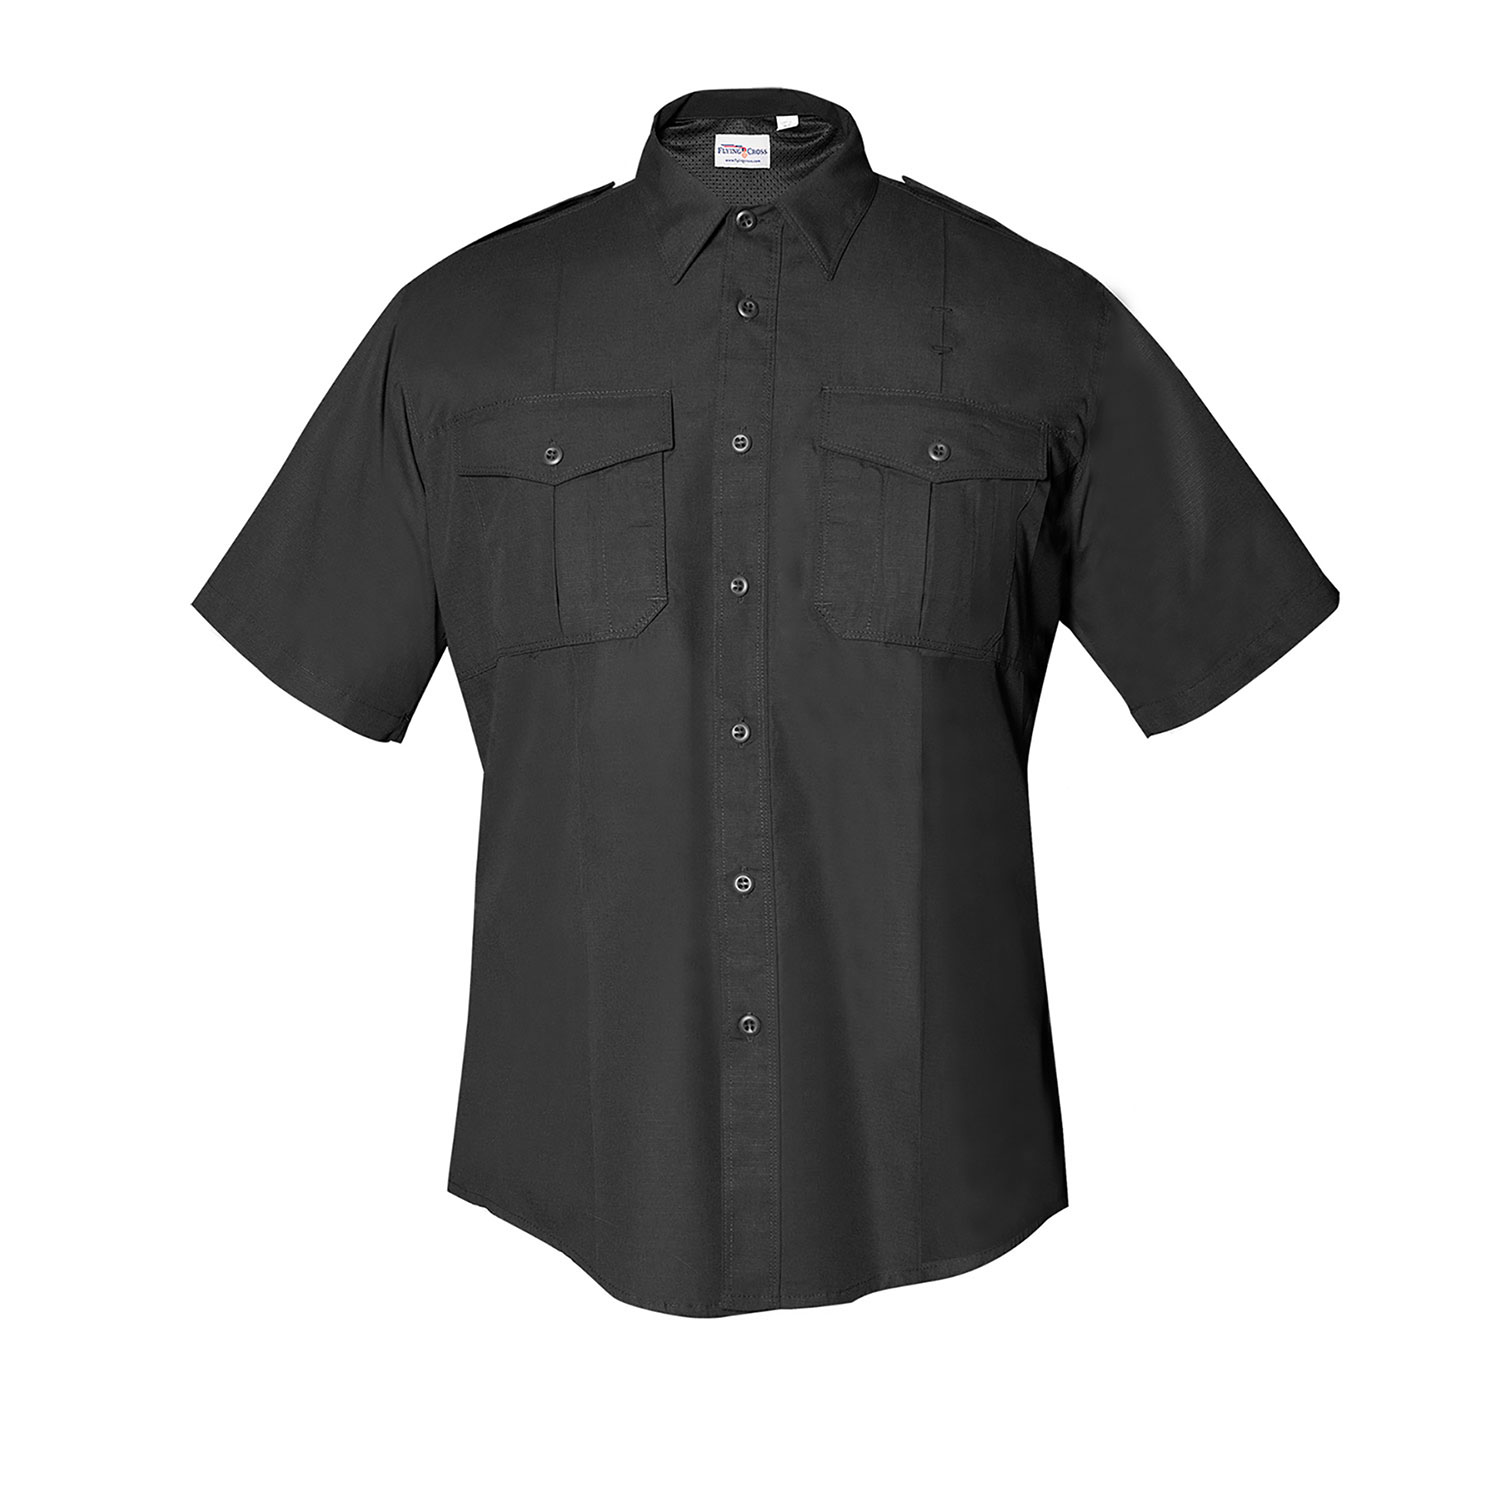 Flying Cross Cross Fx Class B Style Short Sleeve Shirt by Fl